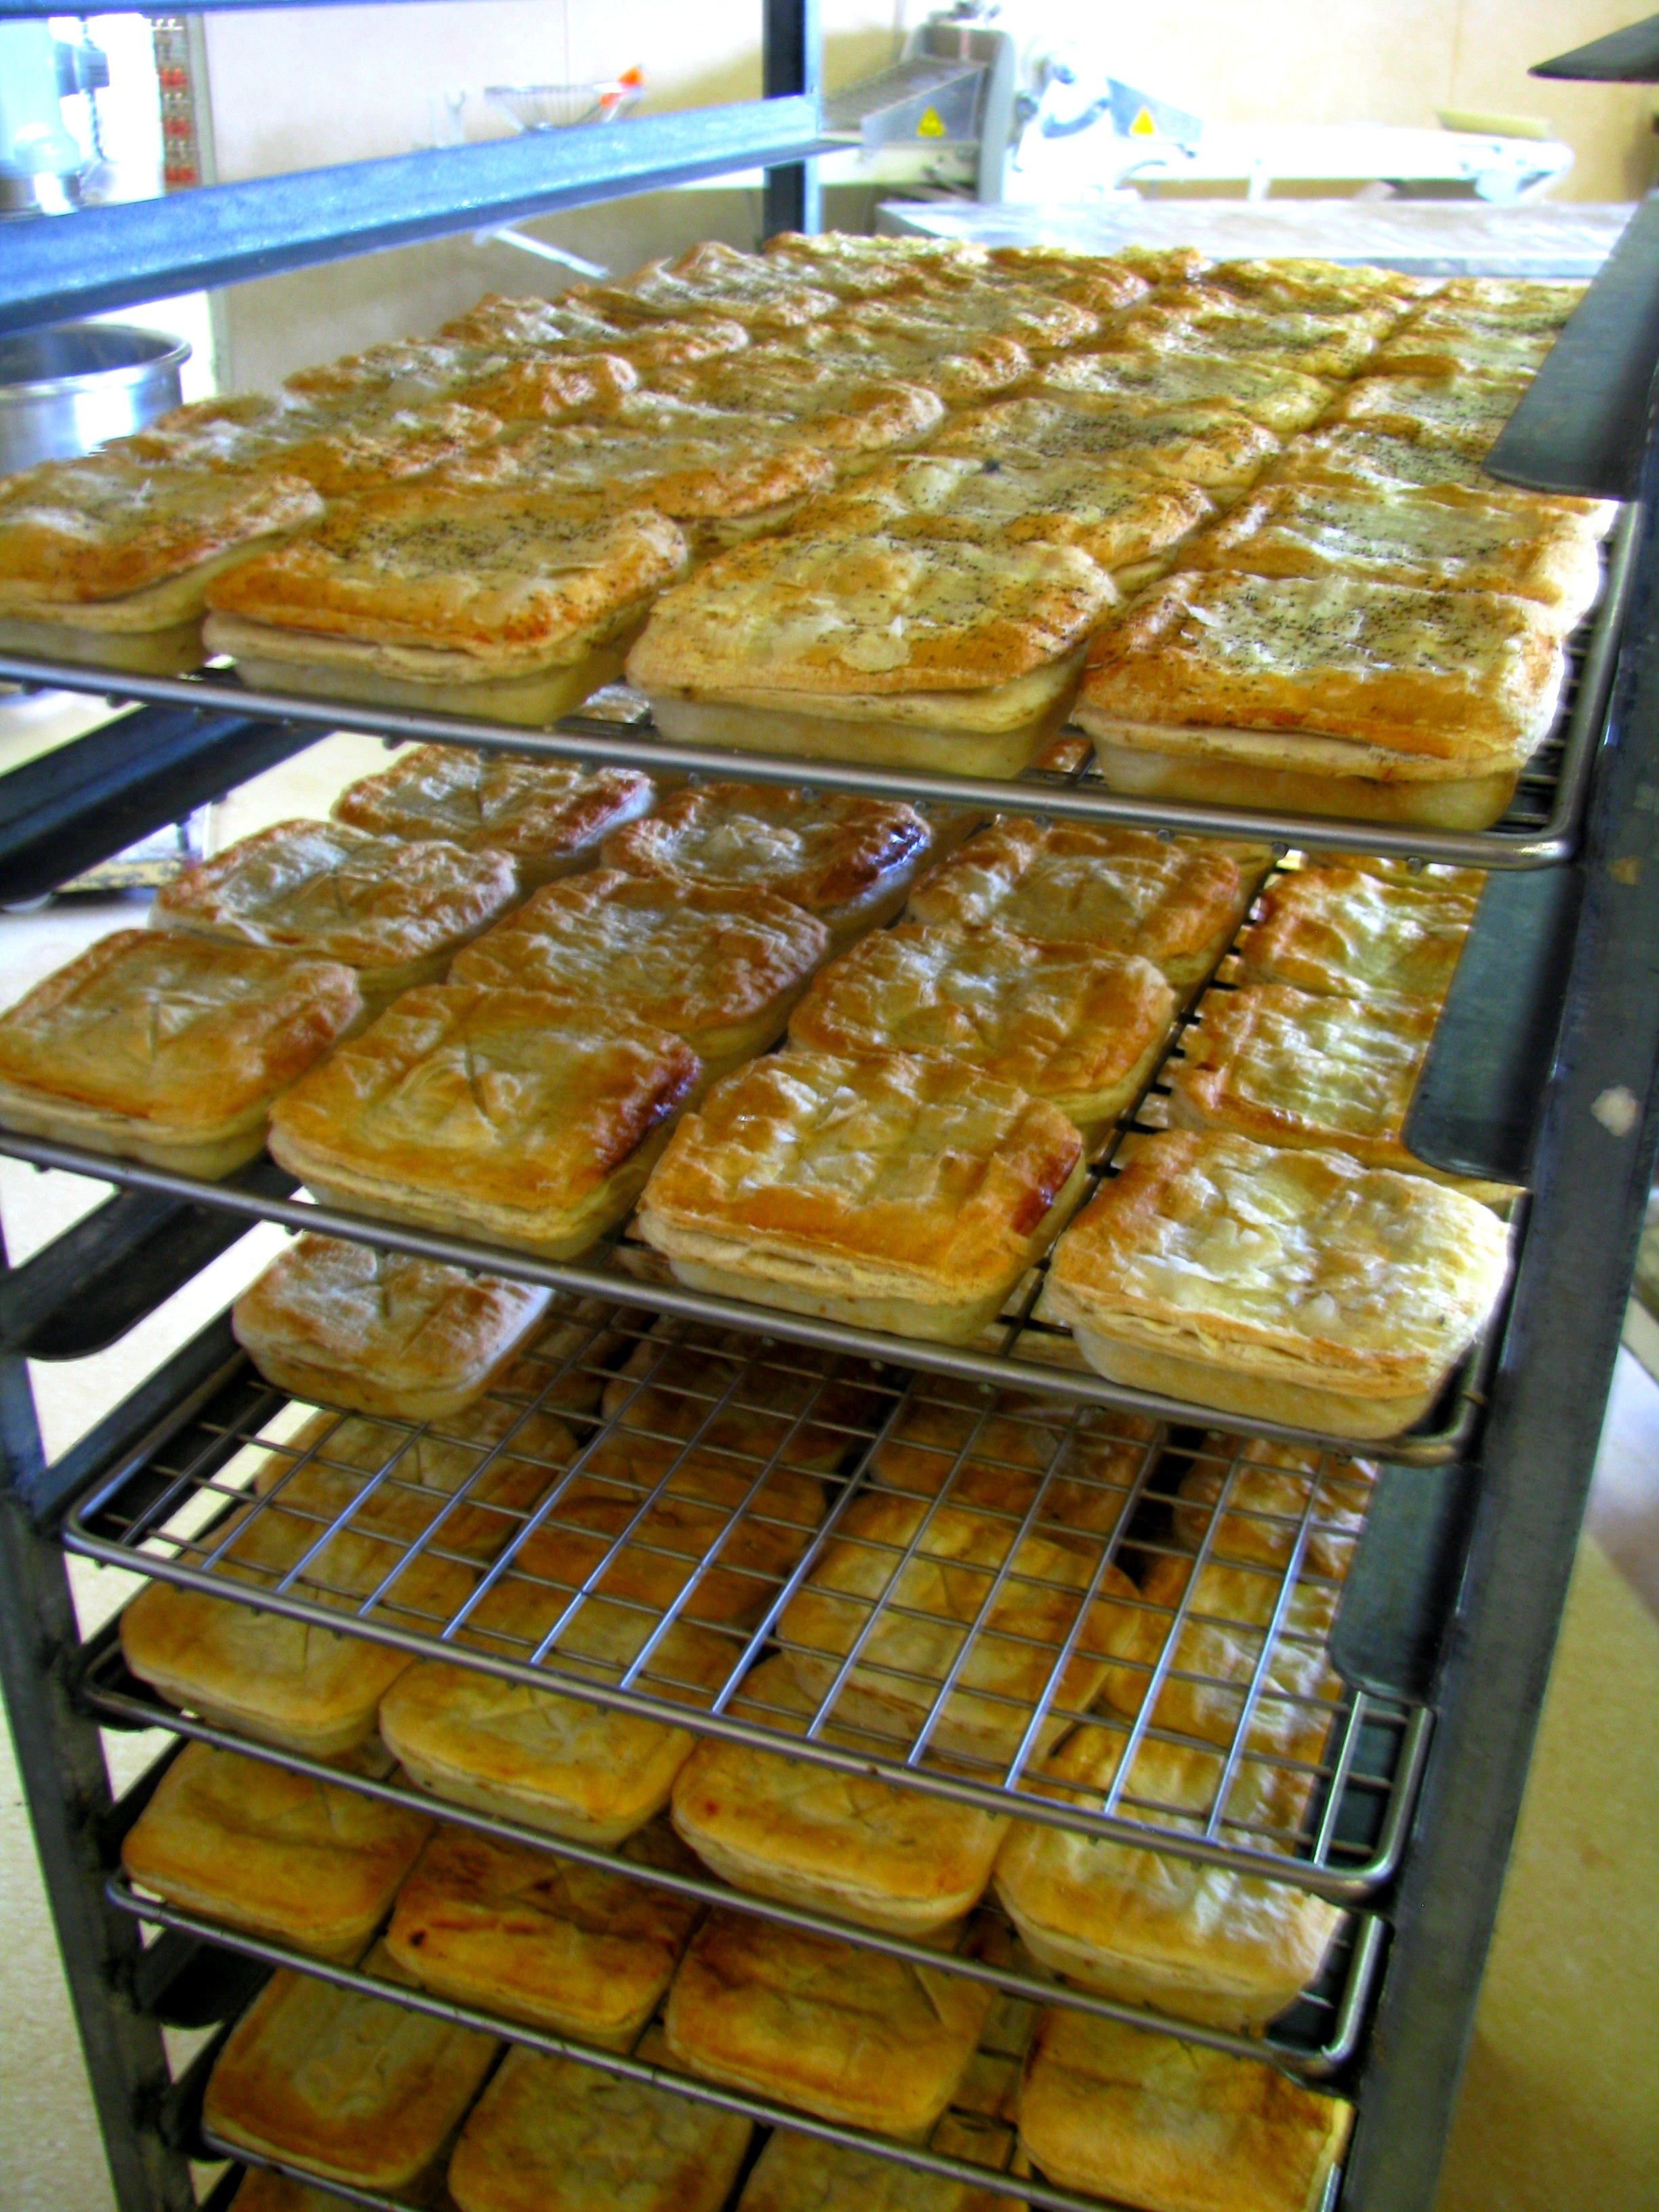 Fernvale Australia  City pictures : Baked pies | The Old Fernvale Bakery Cafe